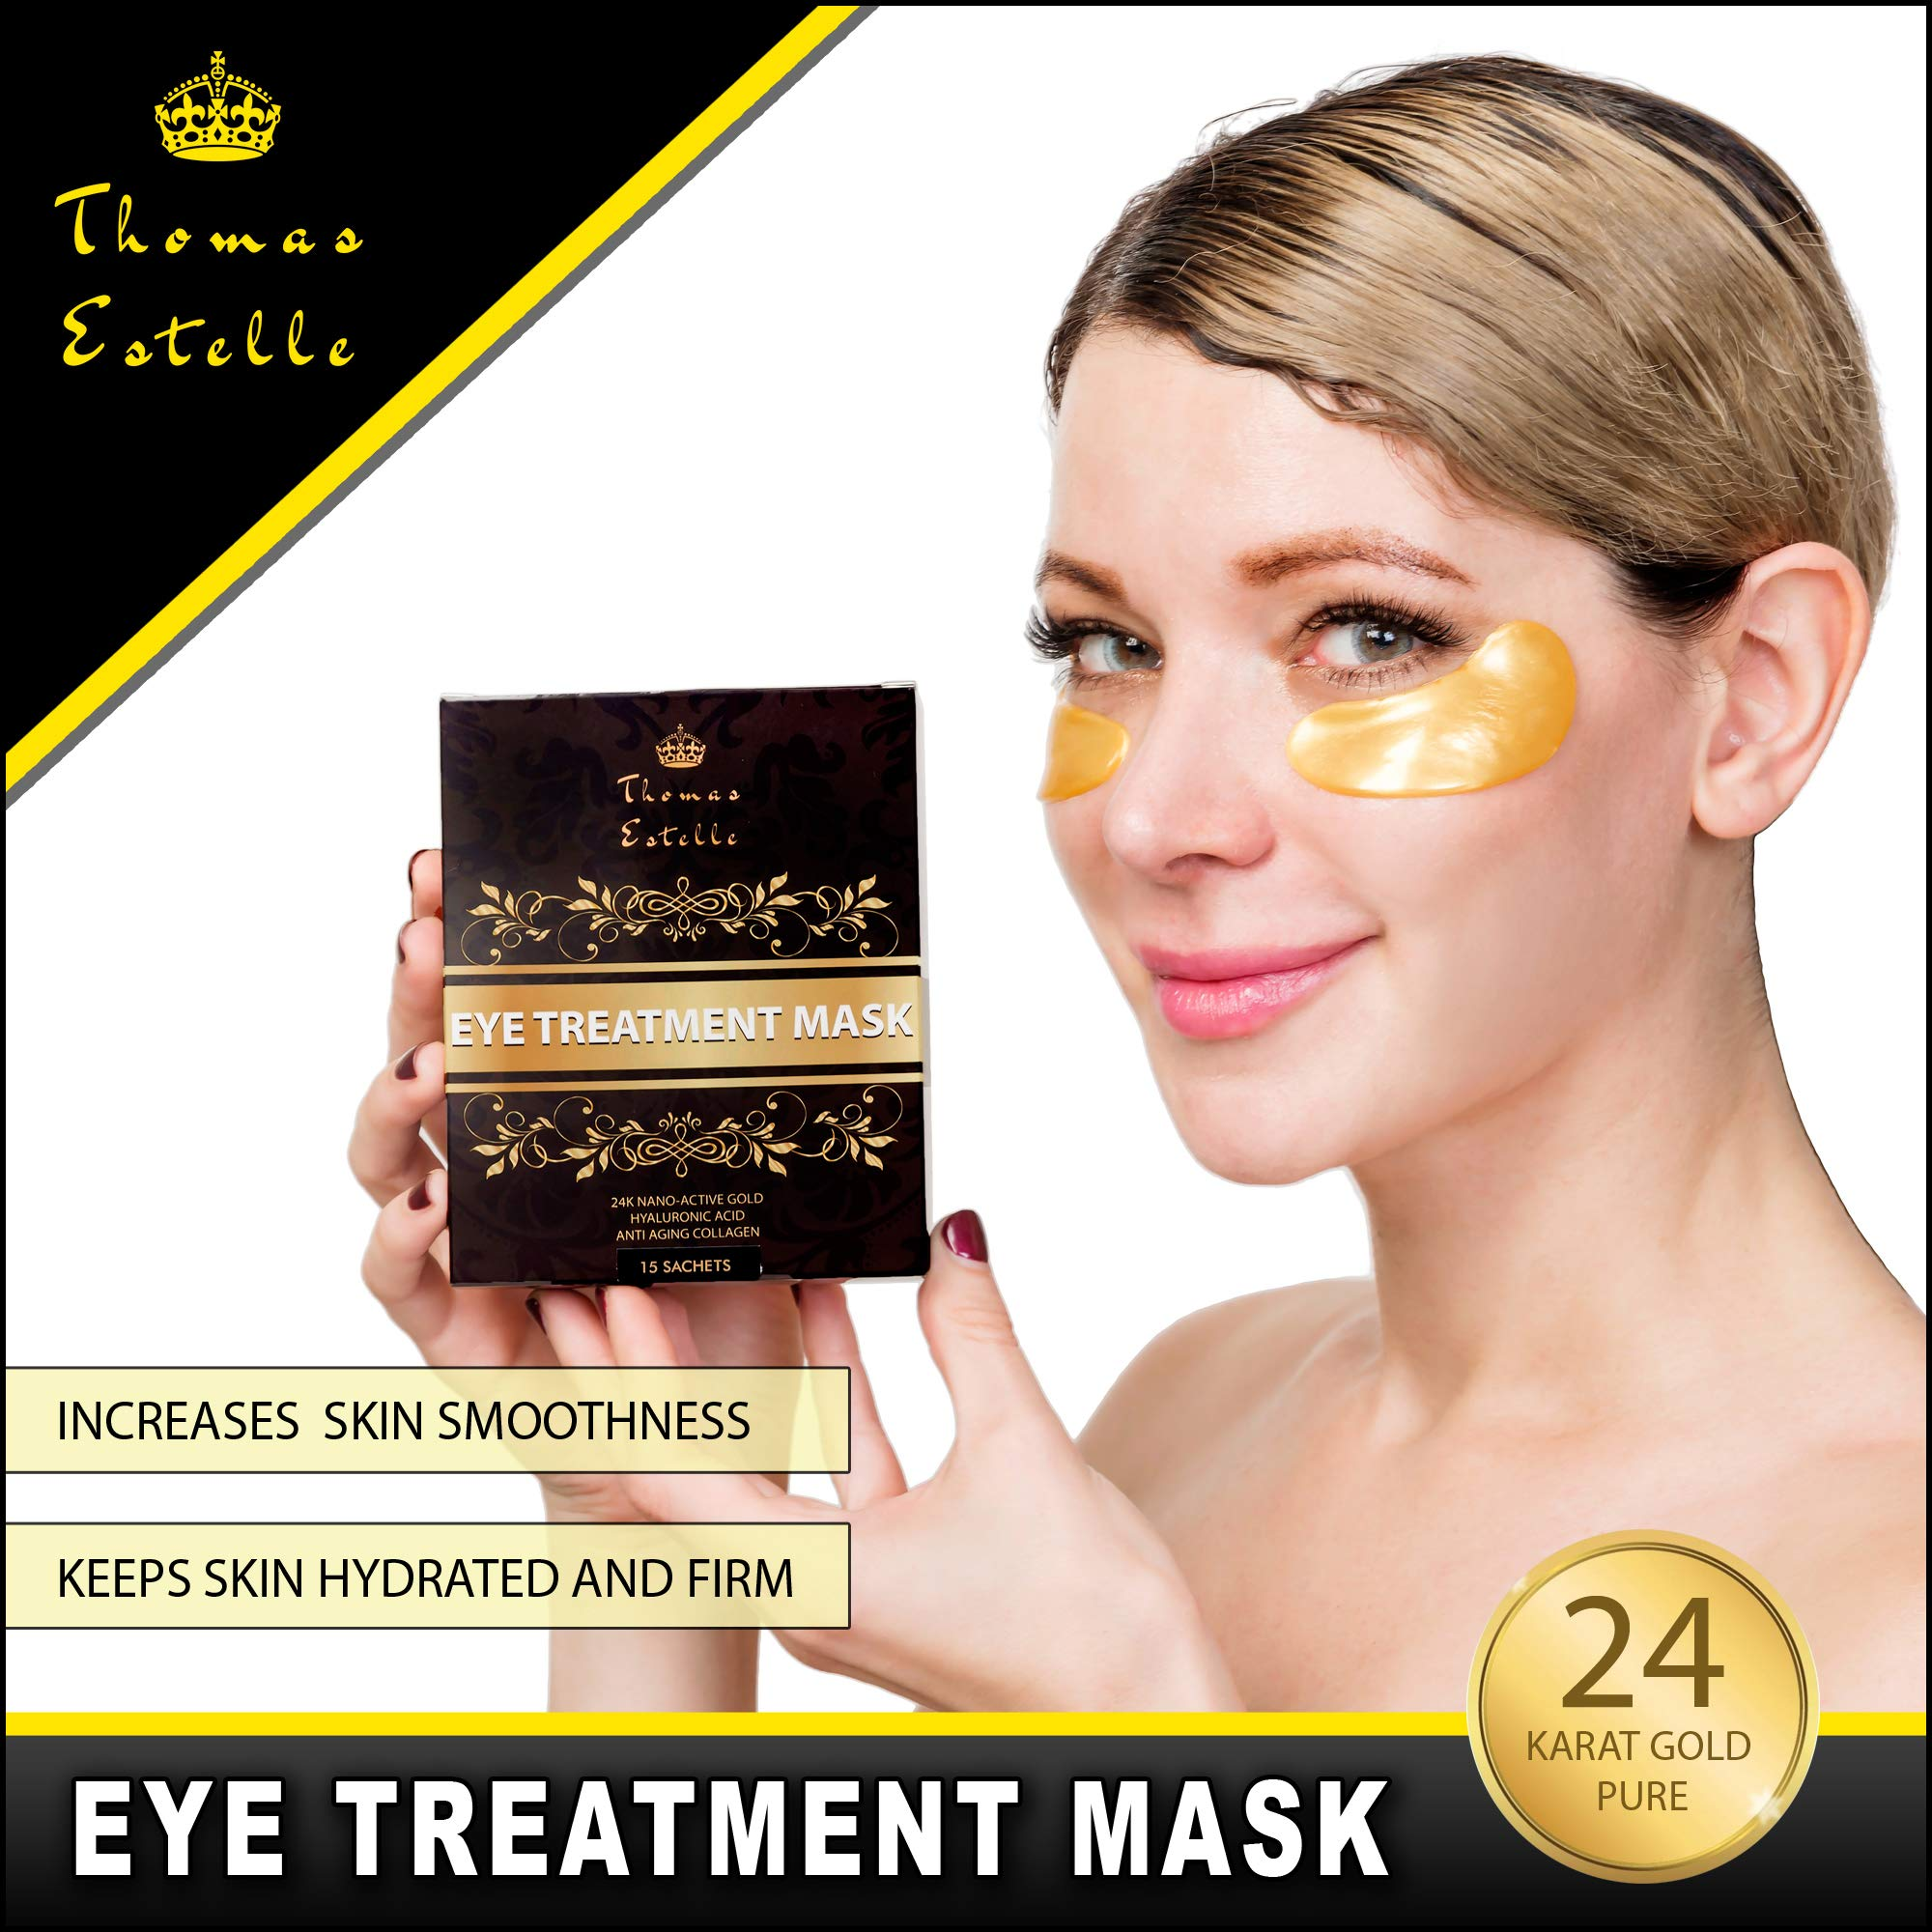 Under Eye Bags Treatment - Gel For Puffiness, Wrinkles, Dark Circles, Crows Feet, Puffy Eyes -24k Gold Luxury - The Best Natural Collagen Mask - Women And Men Masks - Anti Aging Moisturizer Pads by Thomas Estelle (Image #3)